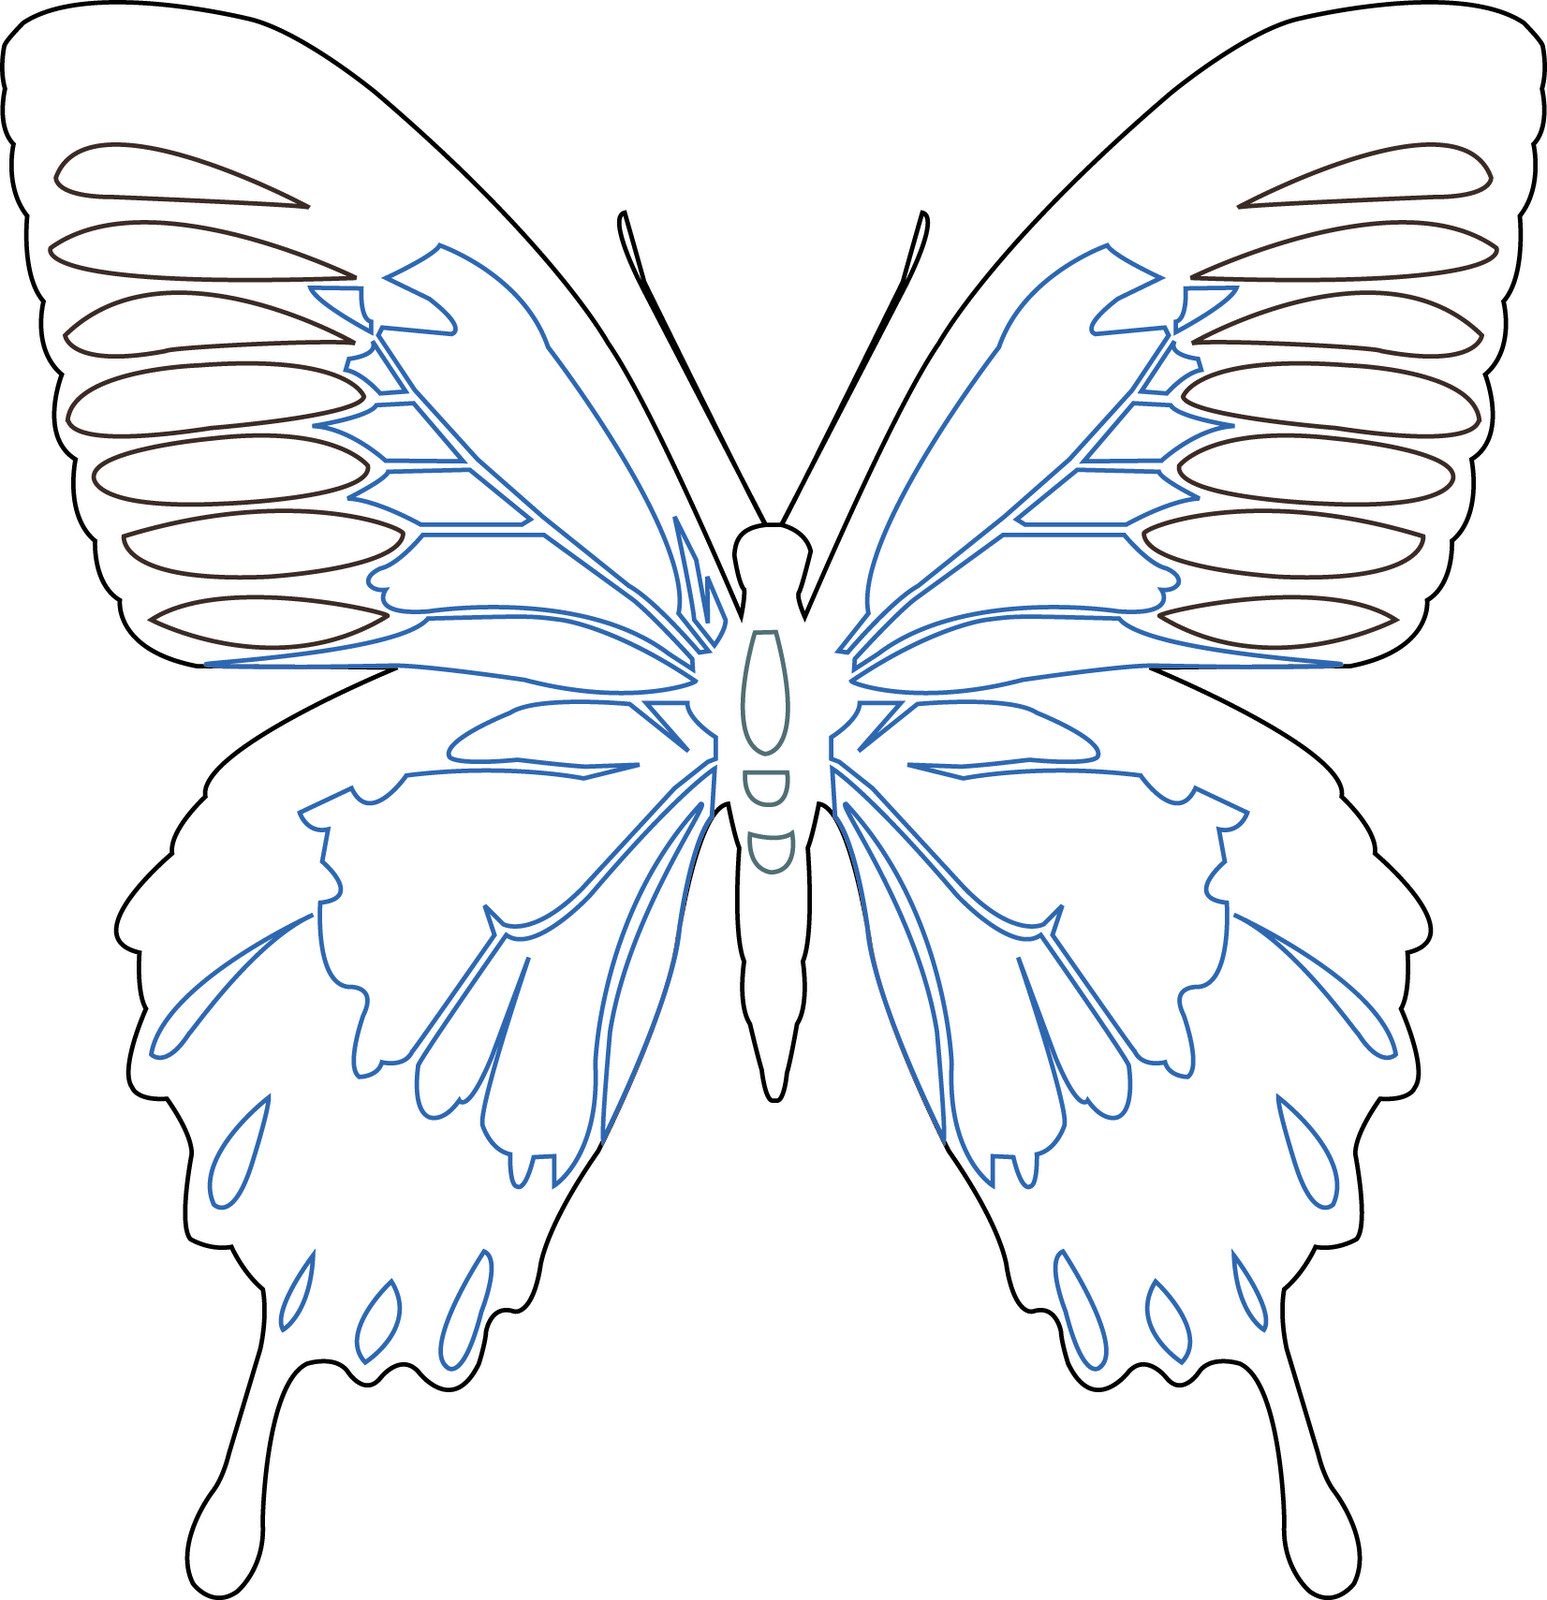 Free Woodburning Patterns Stencils Eiloren organza butterfly Using A soldering Iron On